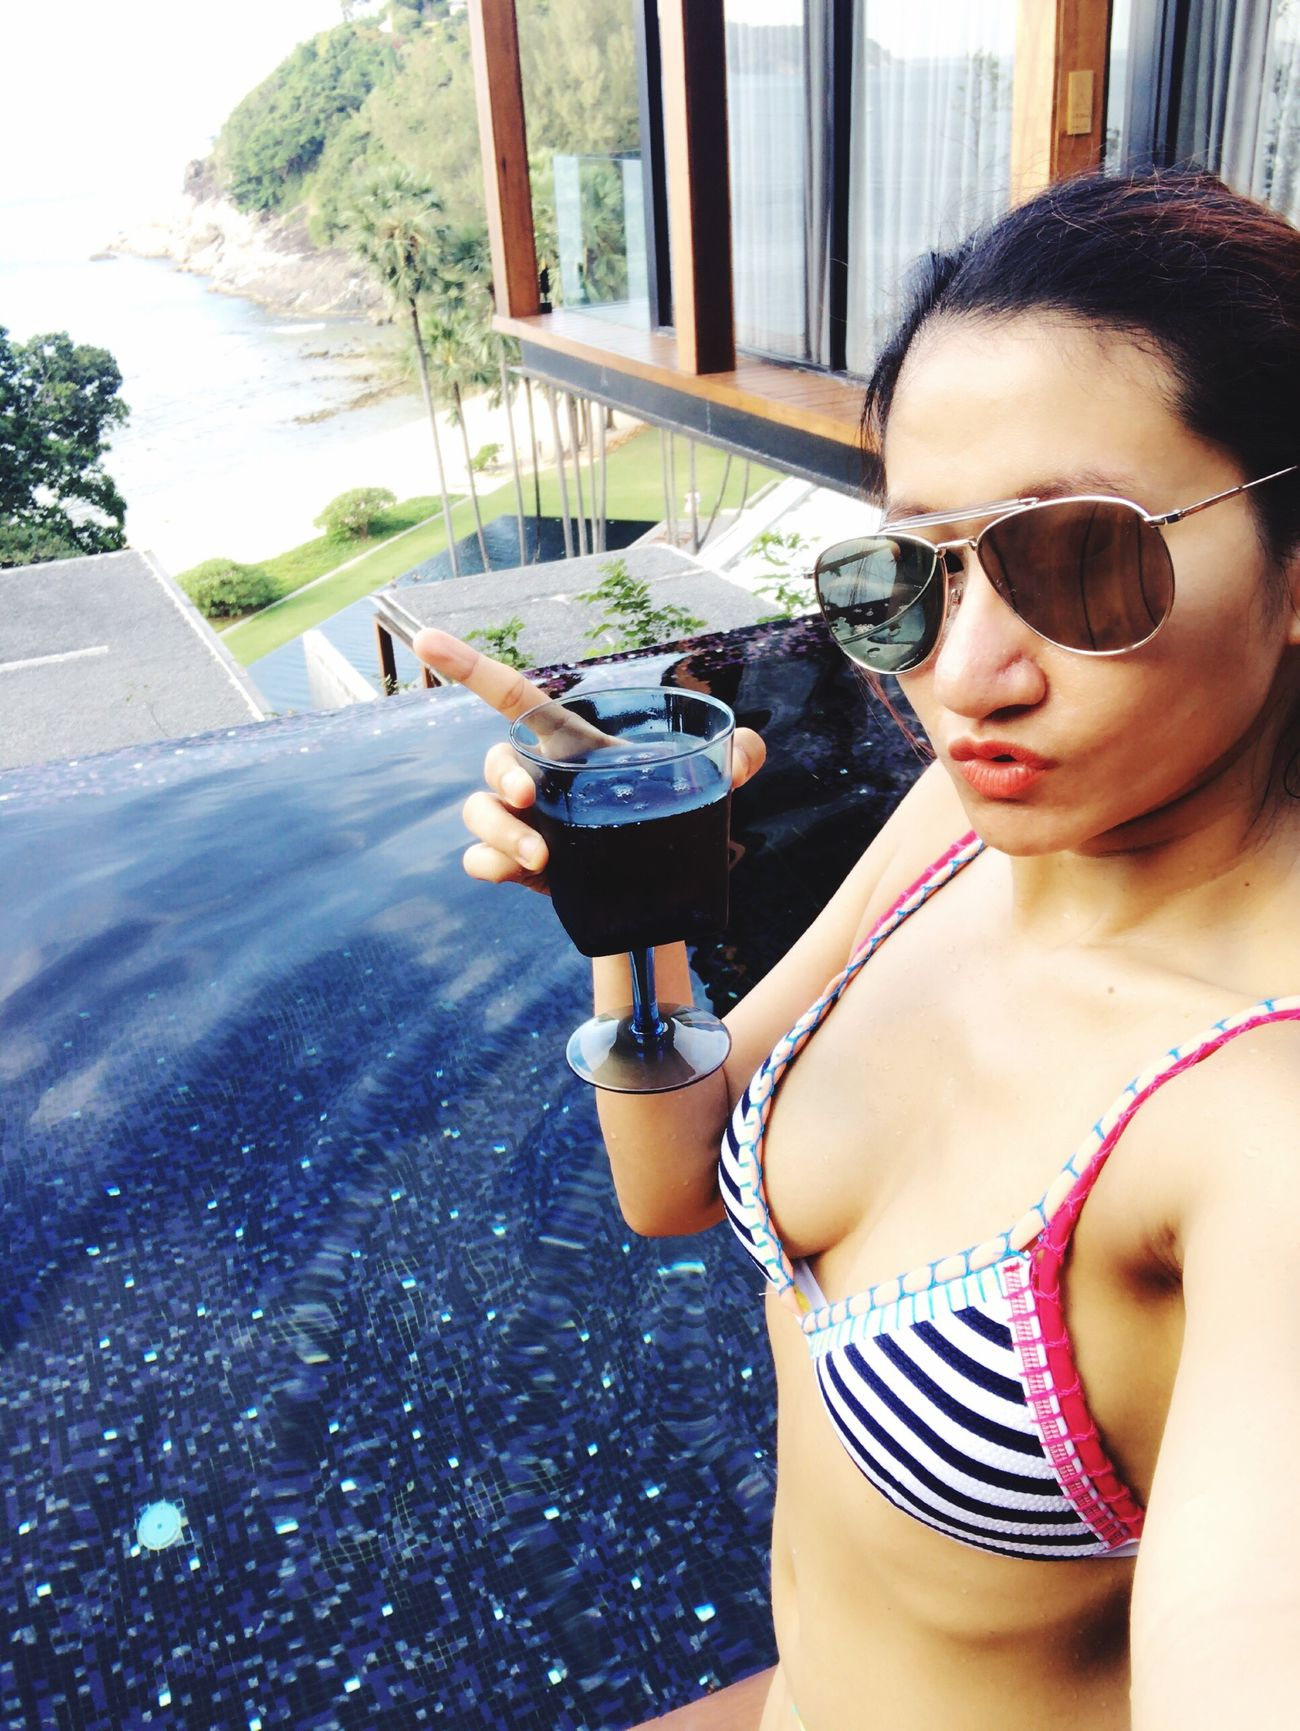 Girl Lifestyles Model Selfportrait That's Me Popular Photos Thaigirl Selfie ✌ Asiangirl Holiday Trip Trip Swimming Today's Hot Look Sexygirl Fashion&love&beauty Enjoying Life